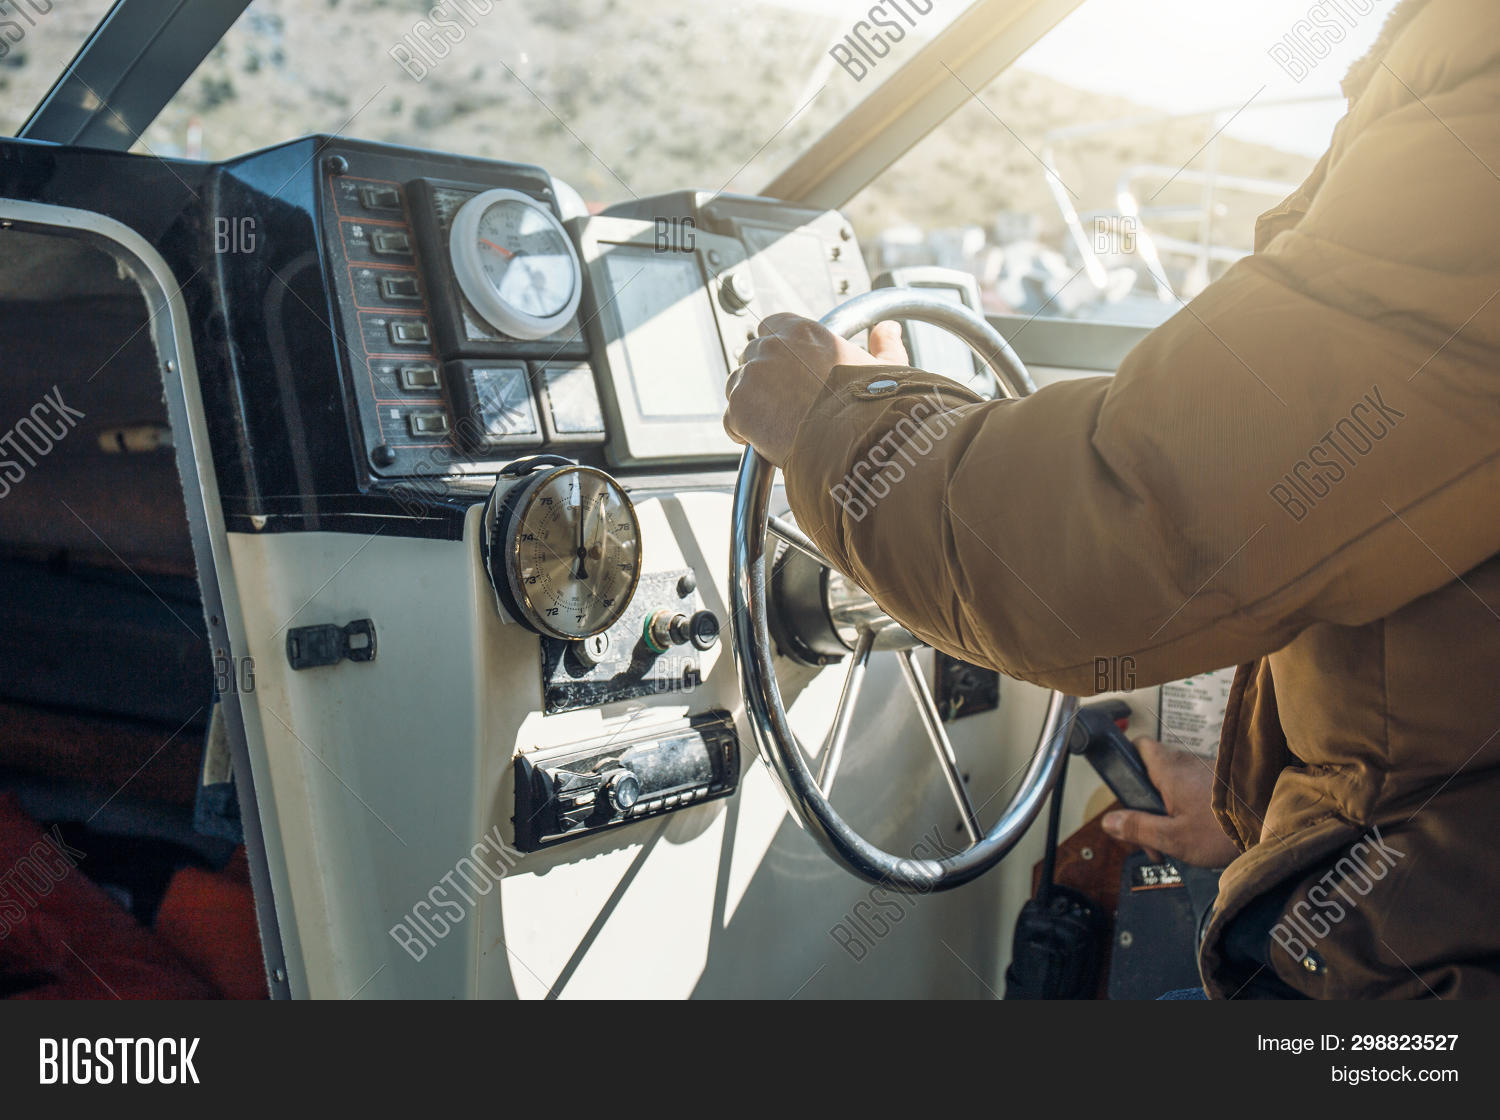 Boat Yacht Captain Image & Photo (Free Trial) | Bigstock